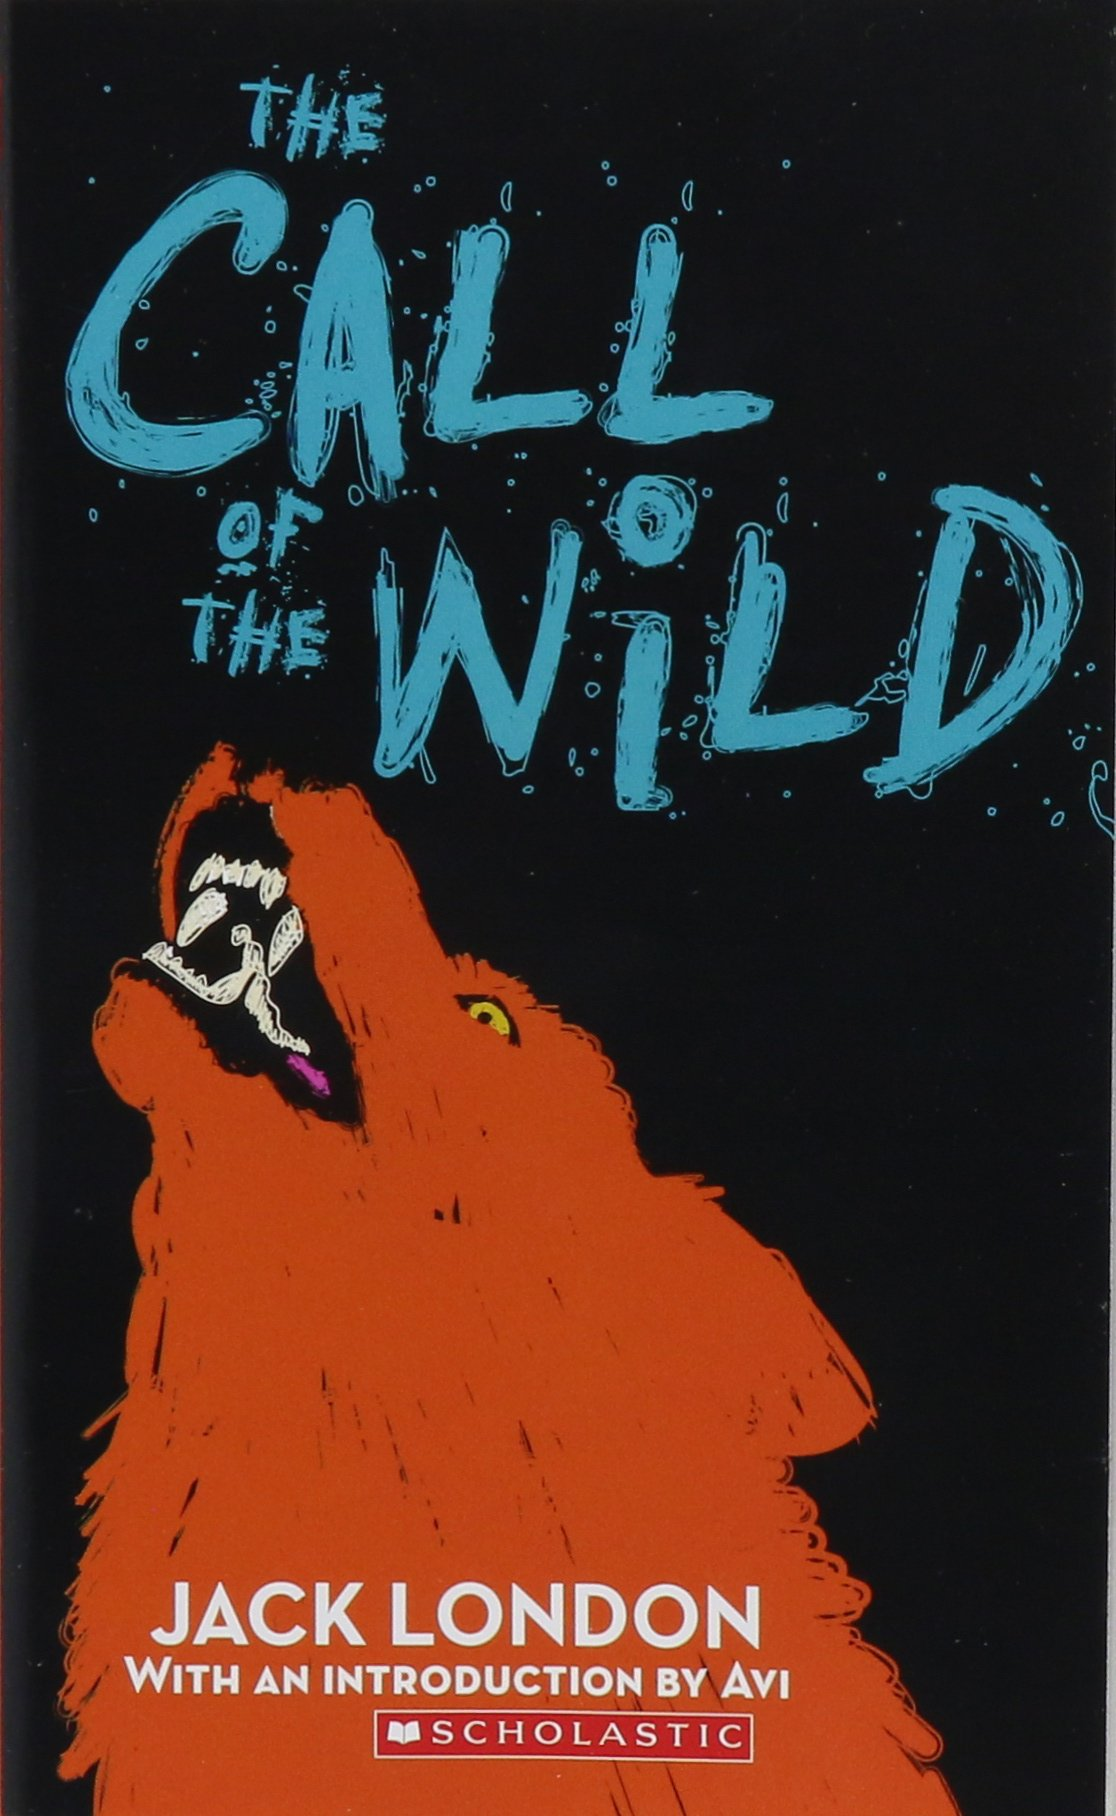 Image result for the call of the wild book cover